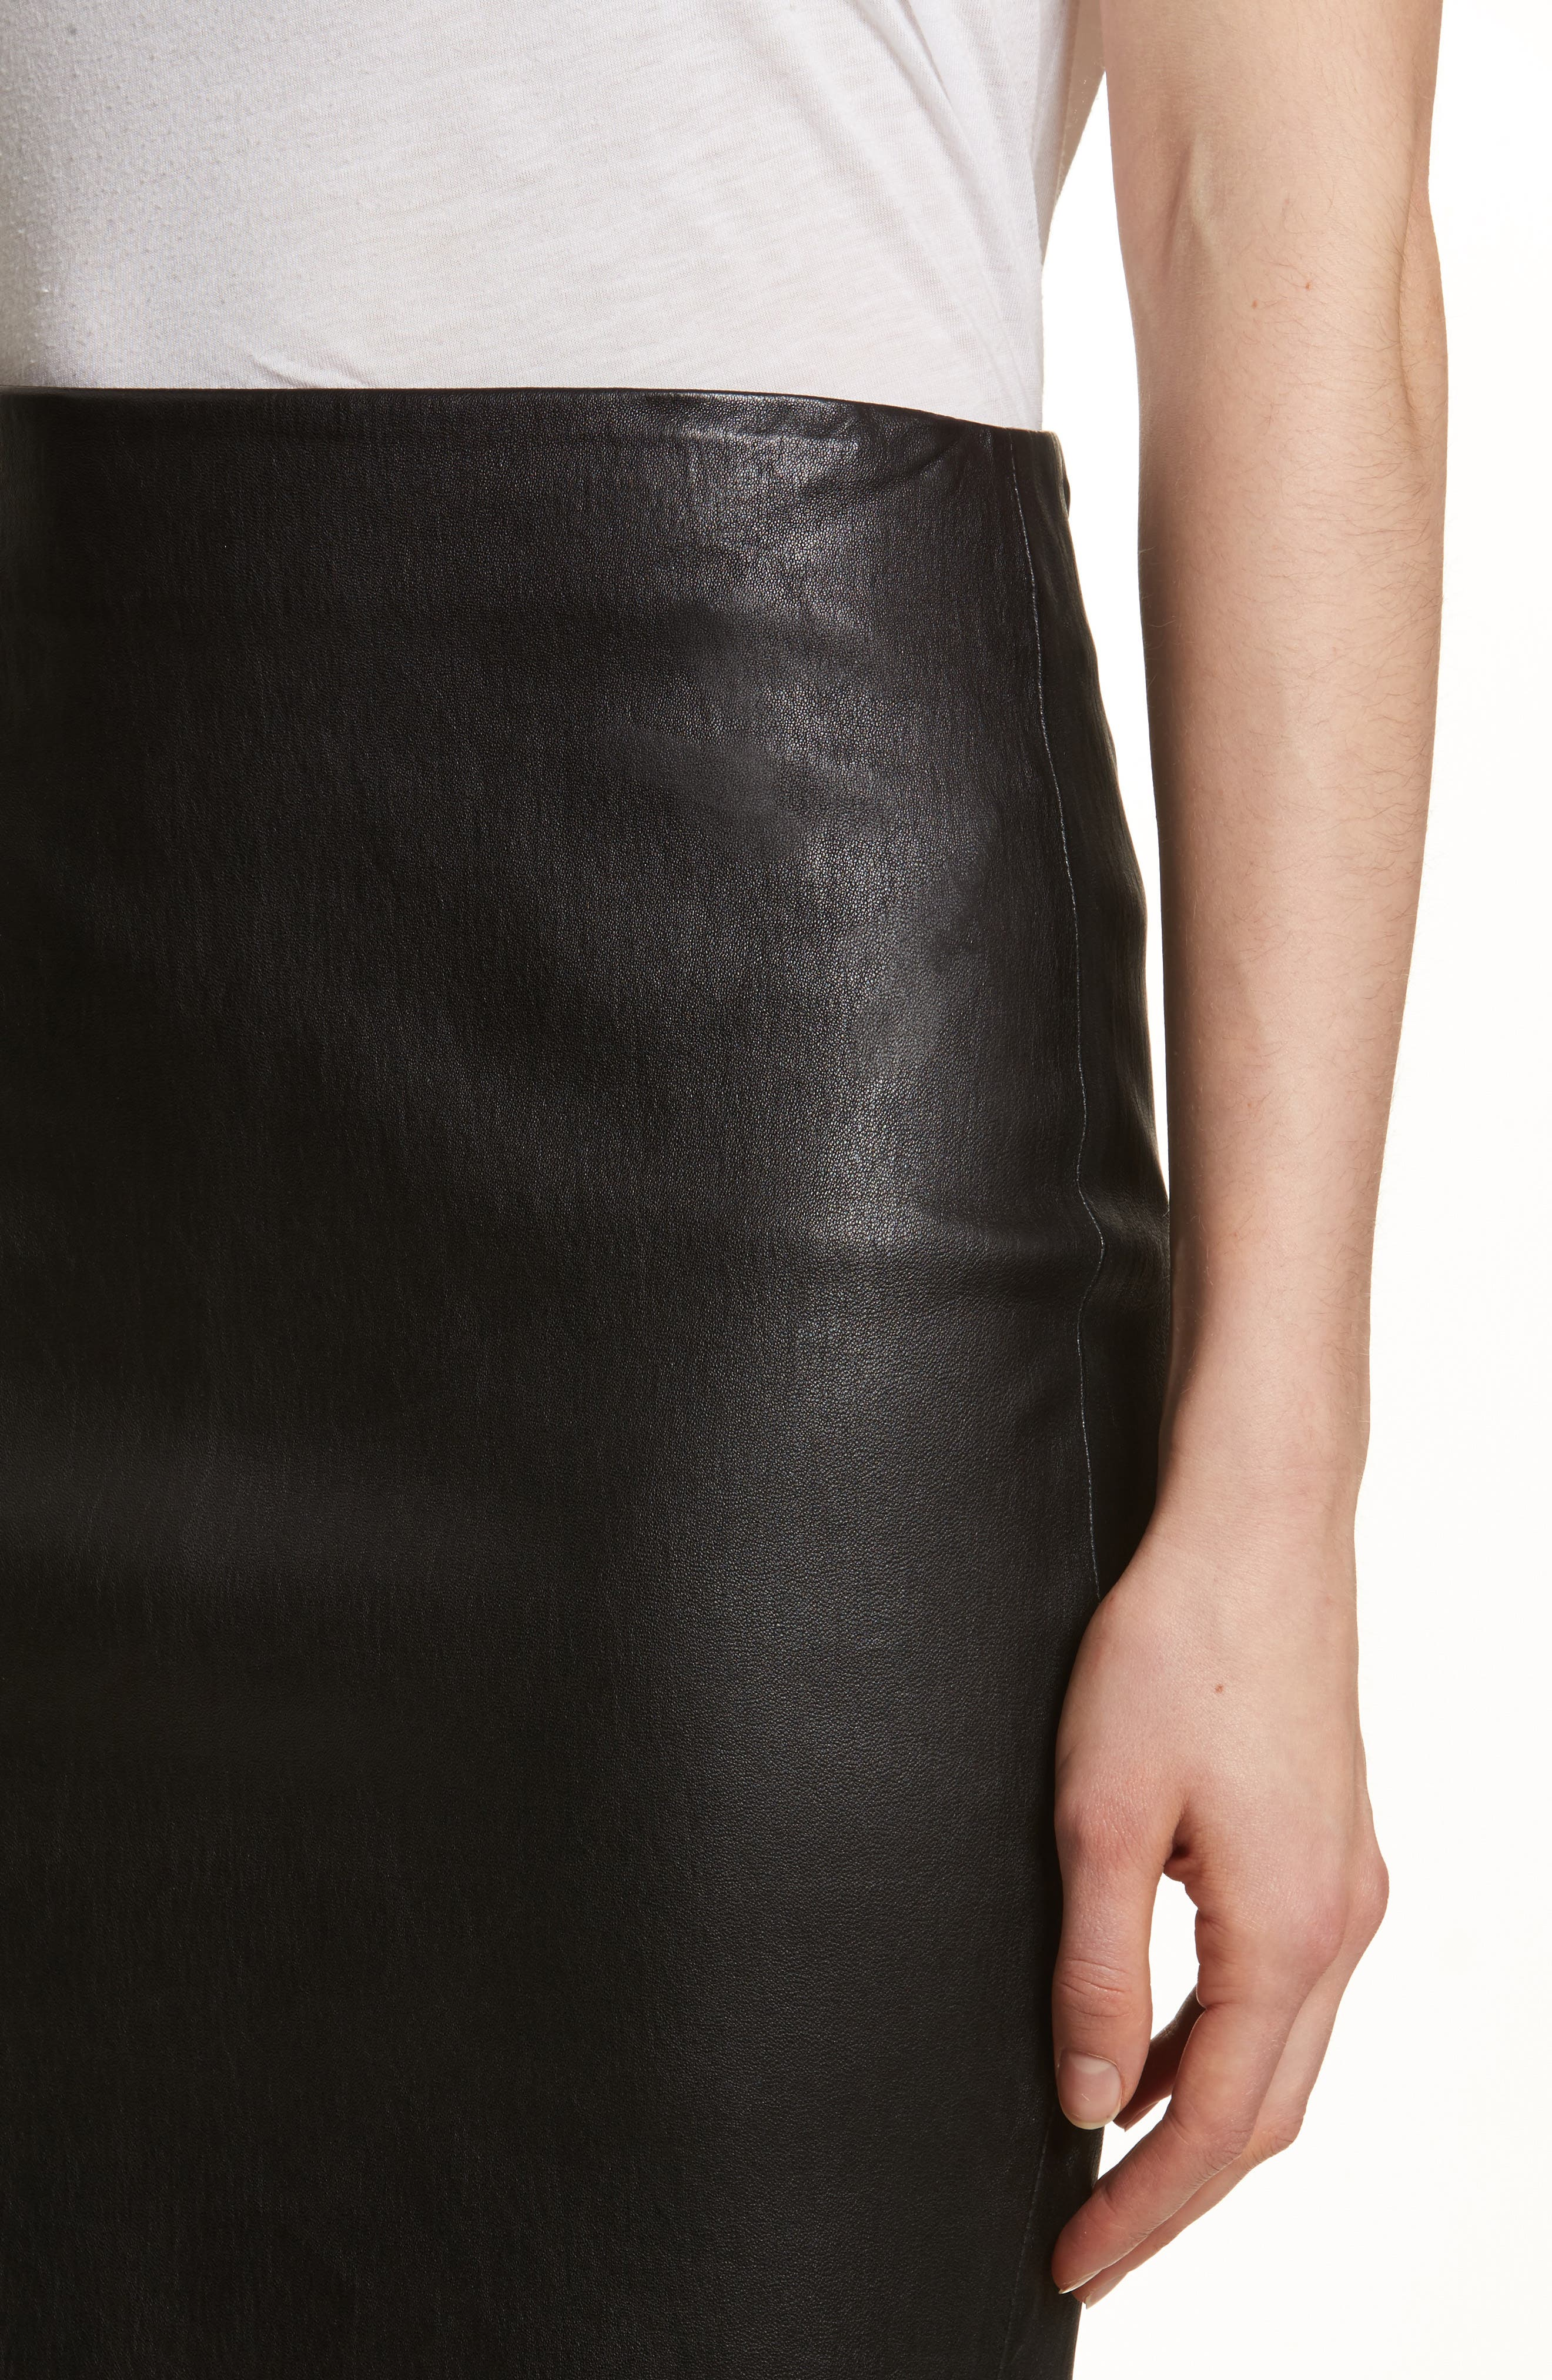 Leather Skinny Pencil Skirt,                             Alternate thumbnail 4, color,                             001